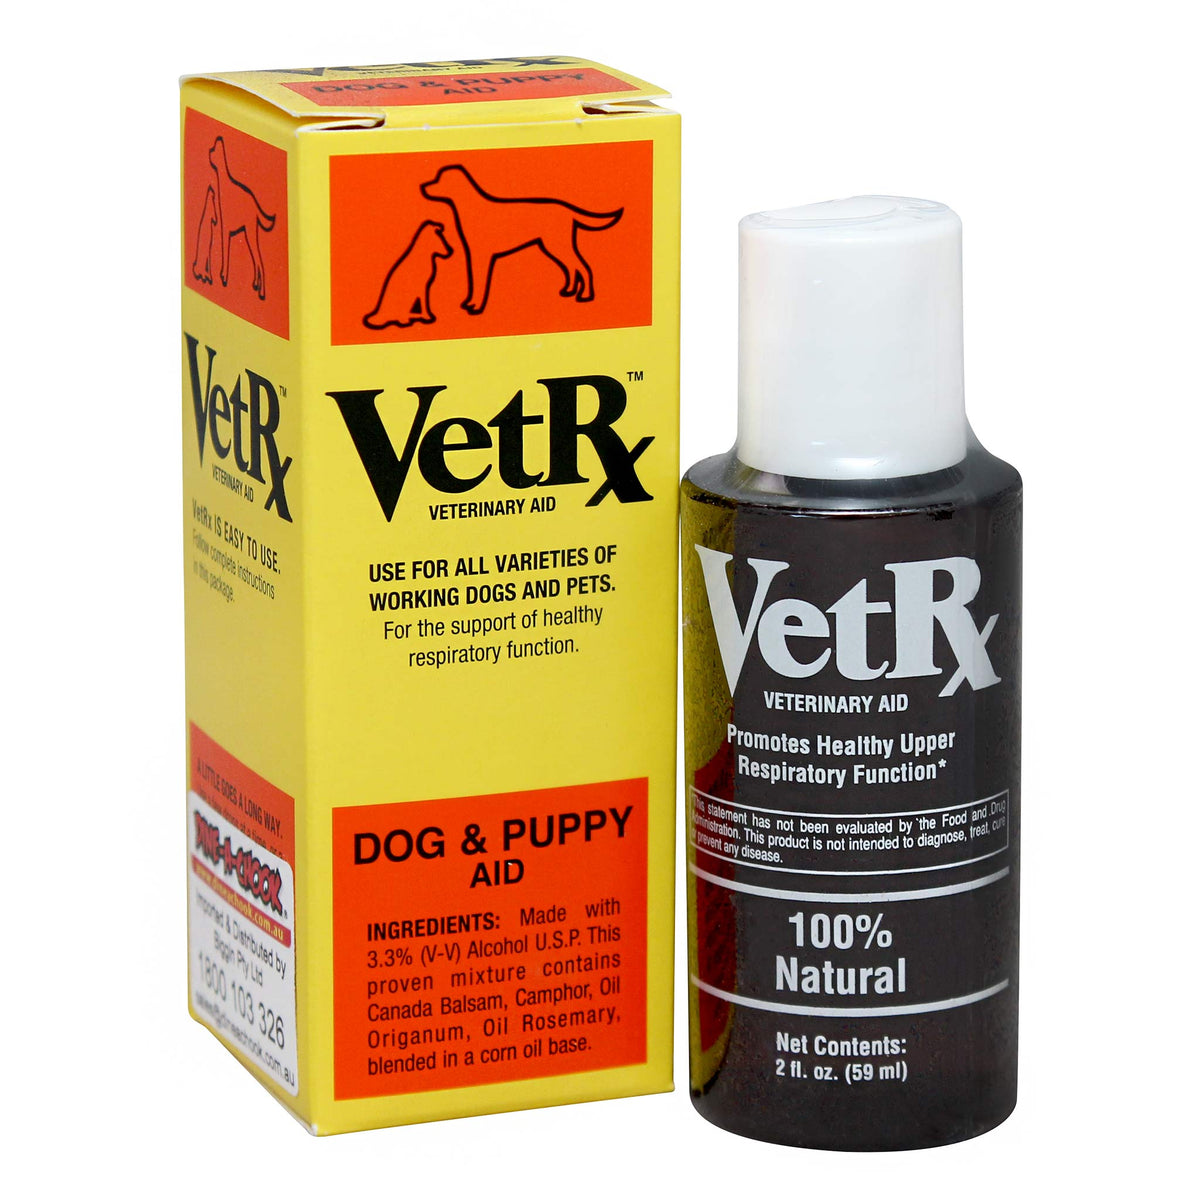 VetRx Dog & Puppy Aid for Sneezing Dogs & Puppies 59mL